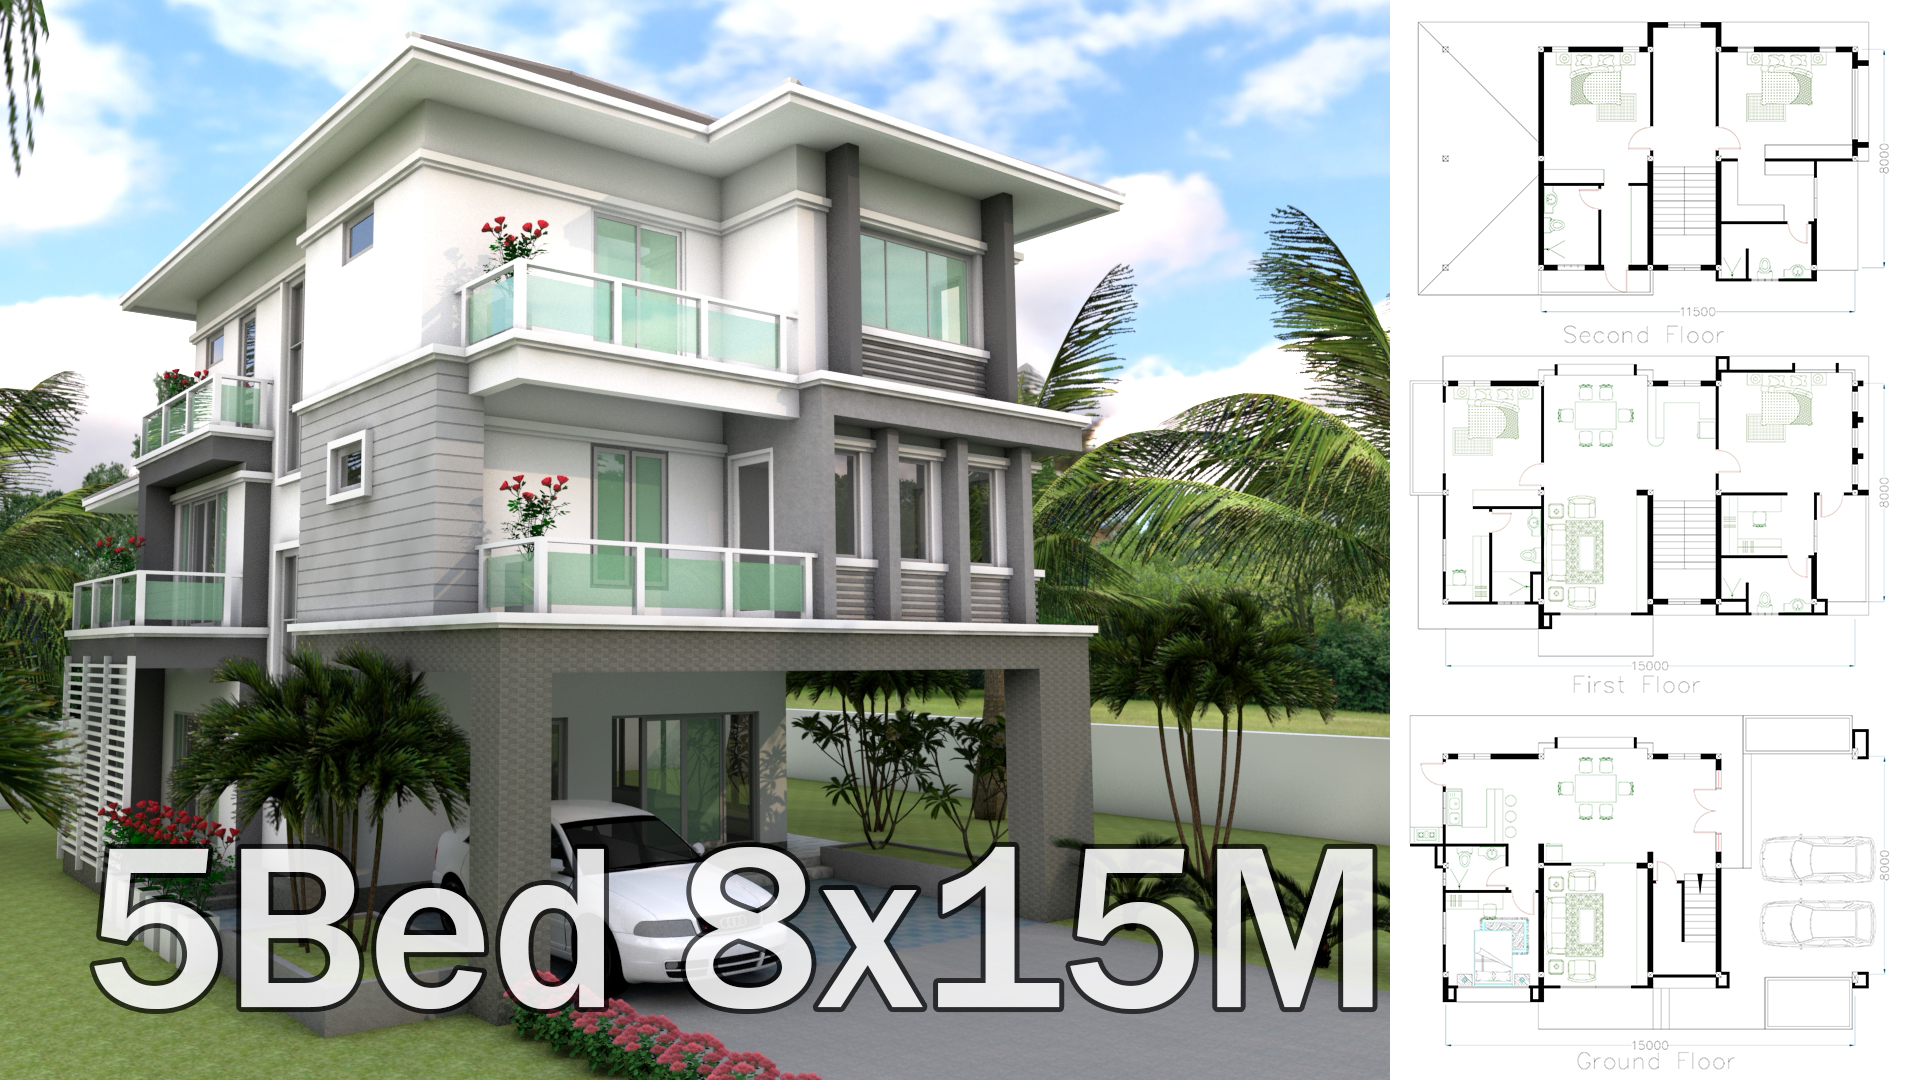 Sketchup 5 bedrooms house plan 8x15m samphoas com